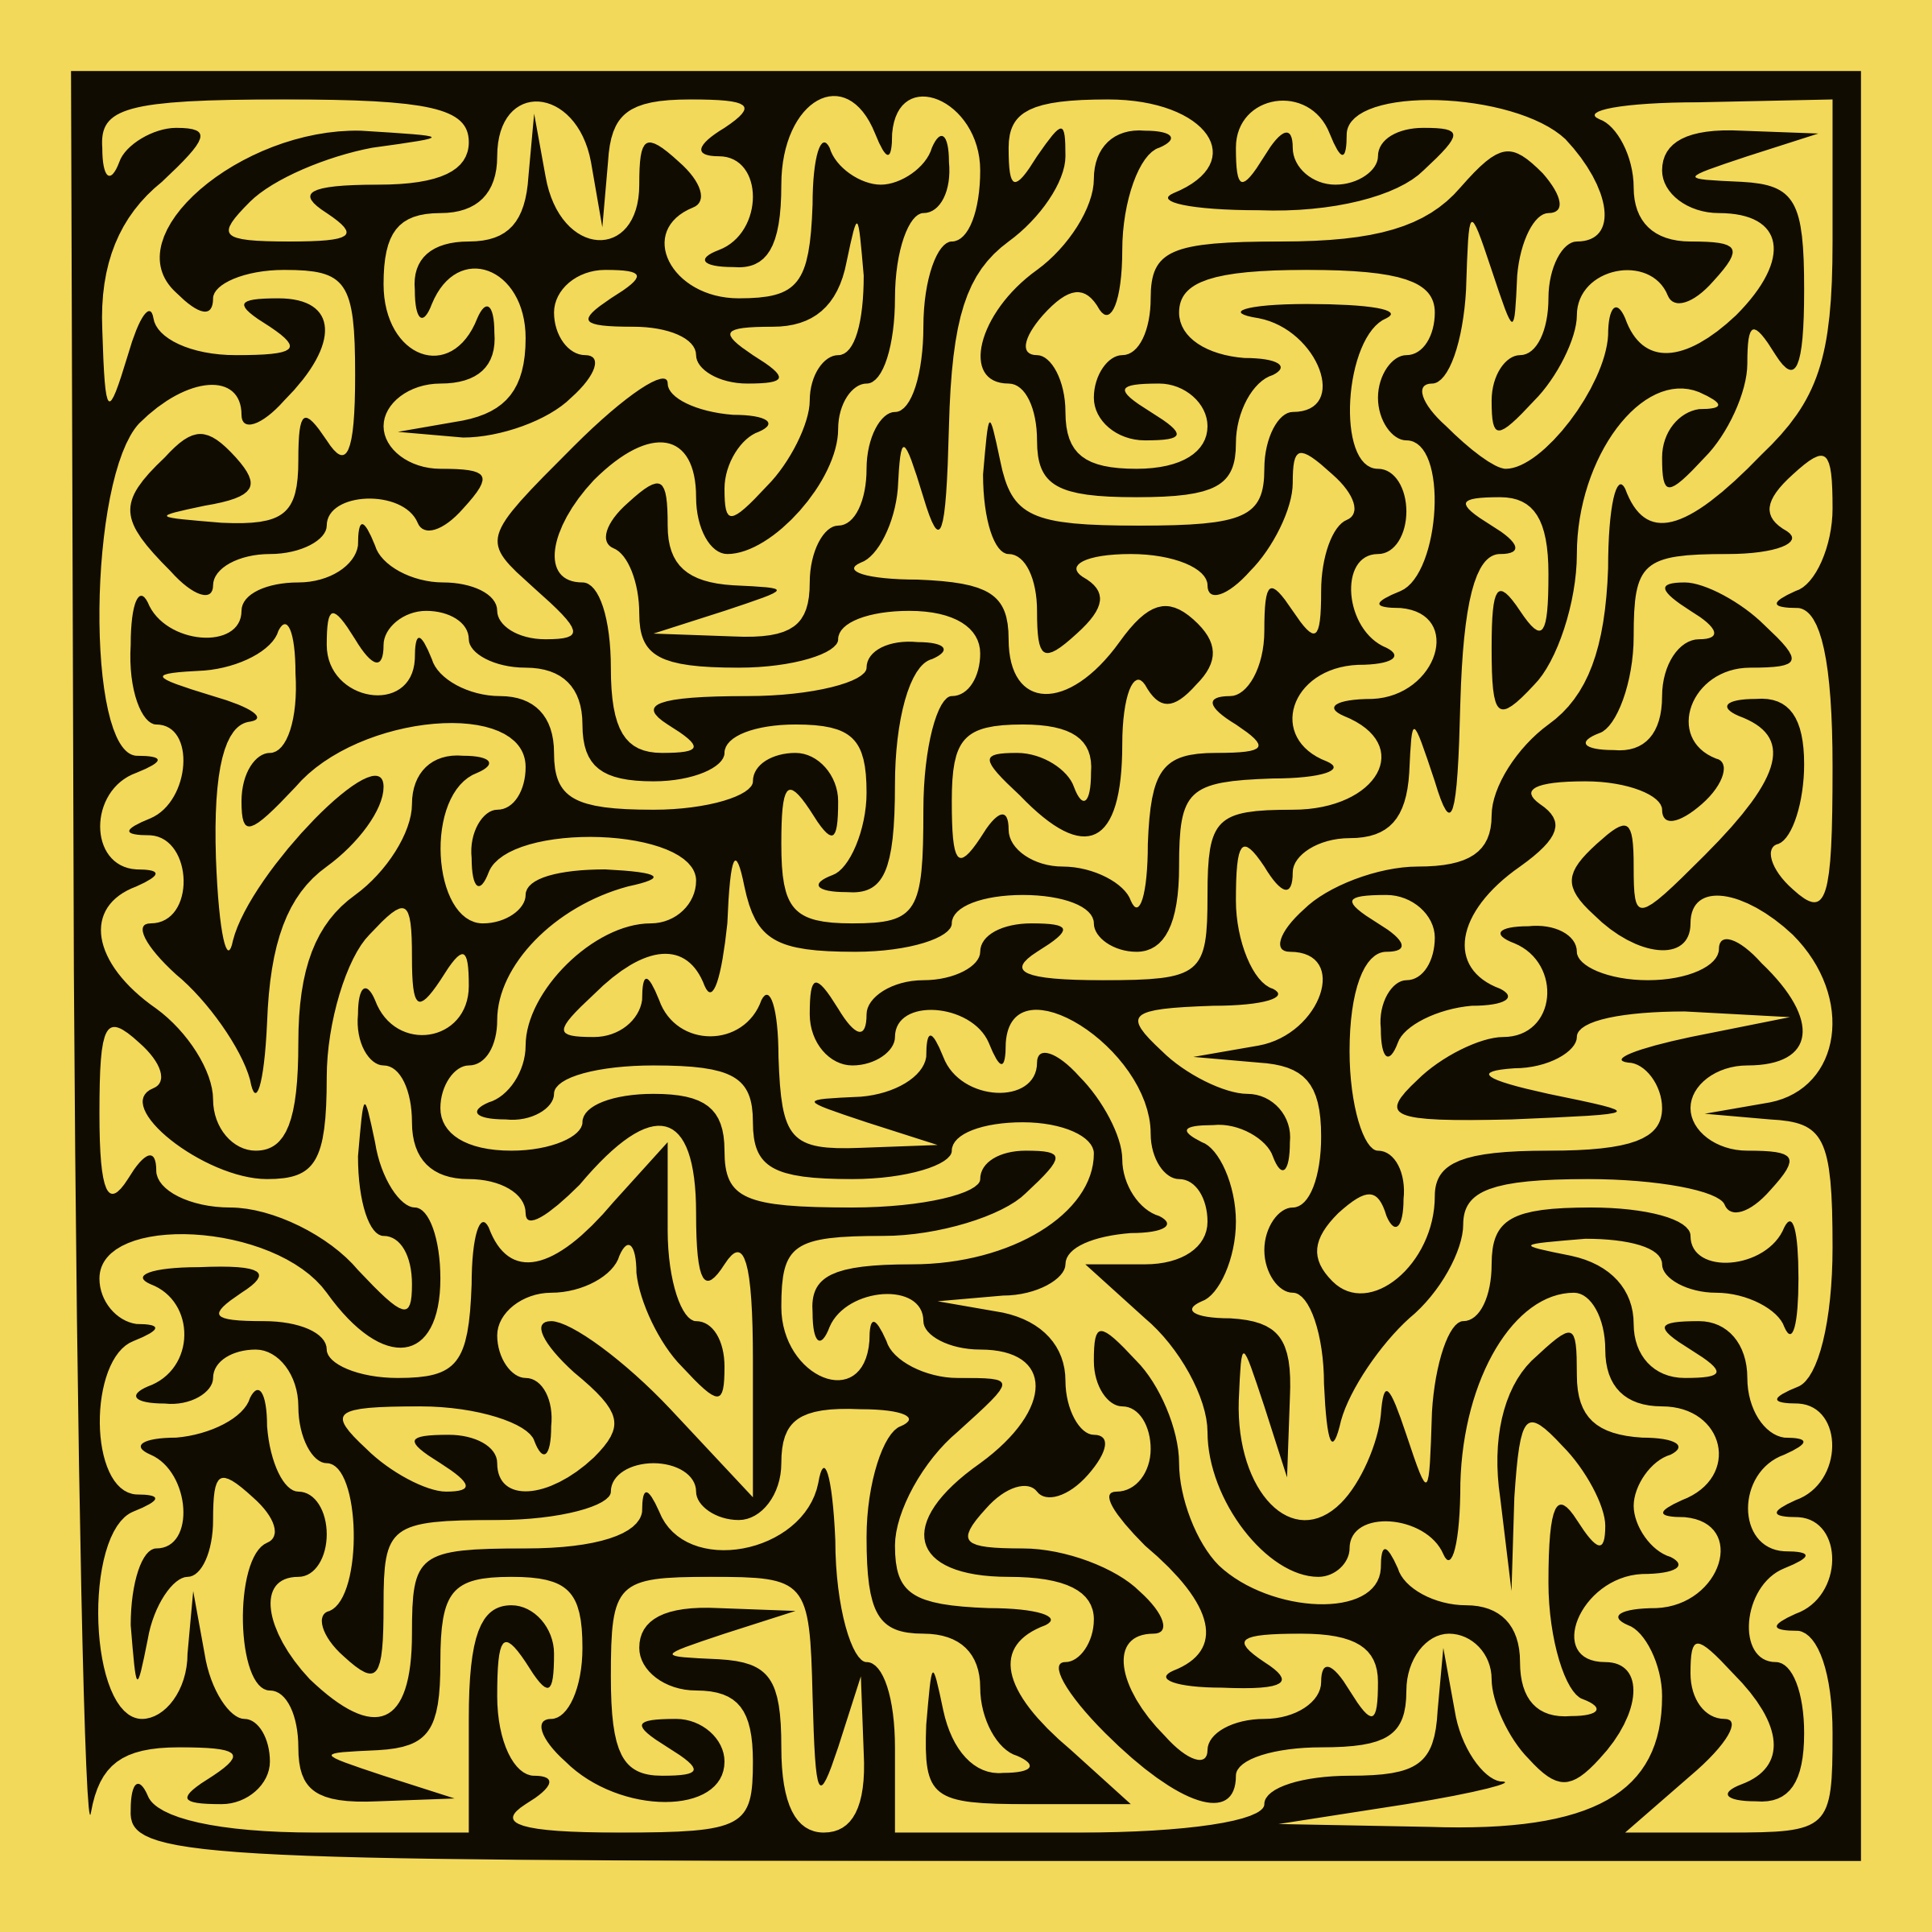 A Small Nirvana Maze by AdamStanislav